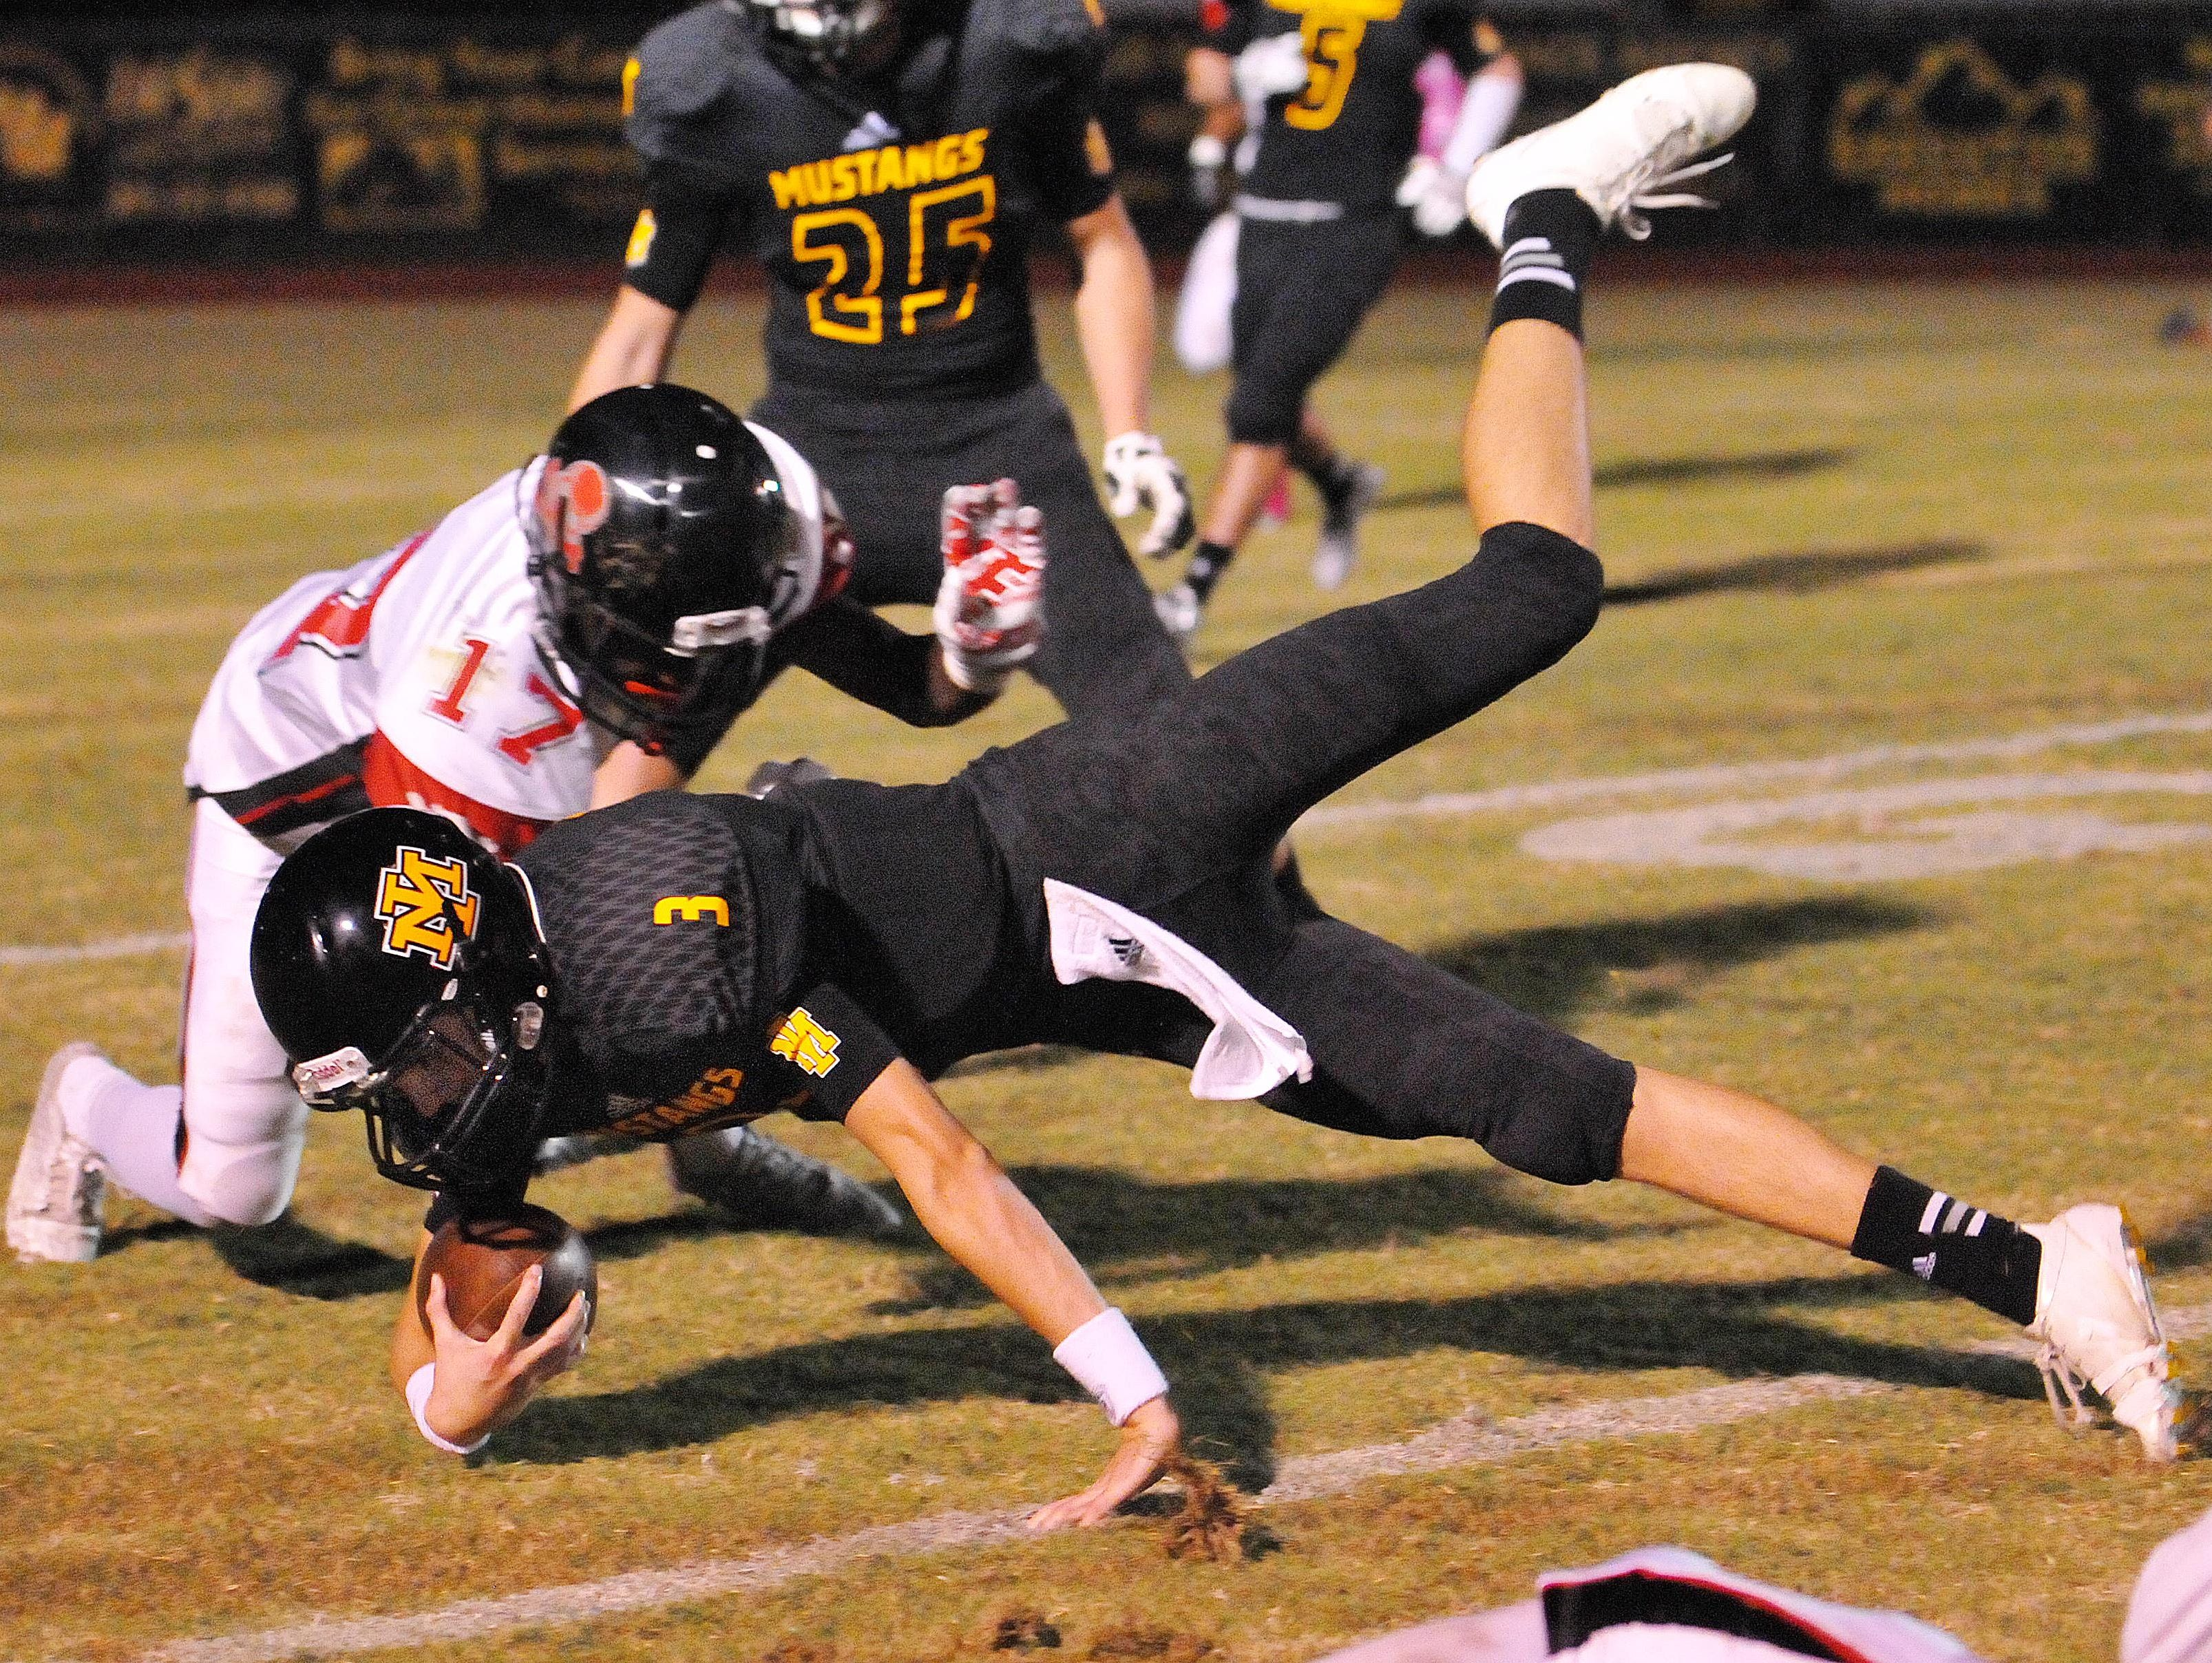 Merritt Island High QB Jimmy Batch is upended by Palm Bay High defenders during Friday night's game at Merritt Island High.